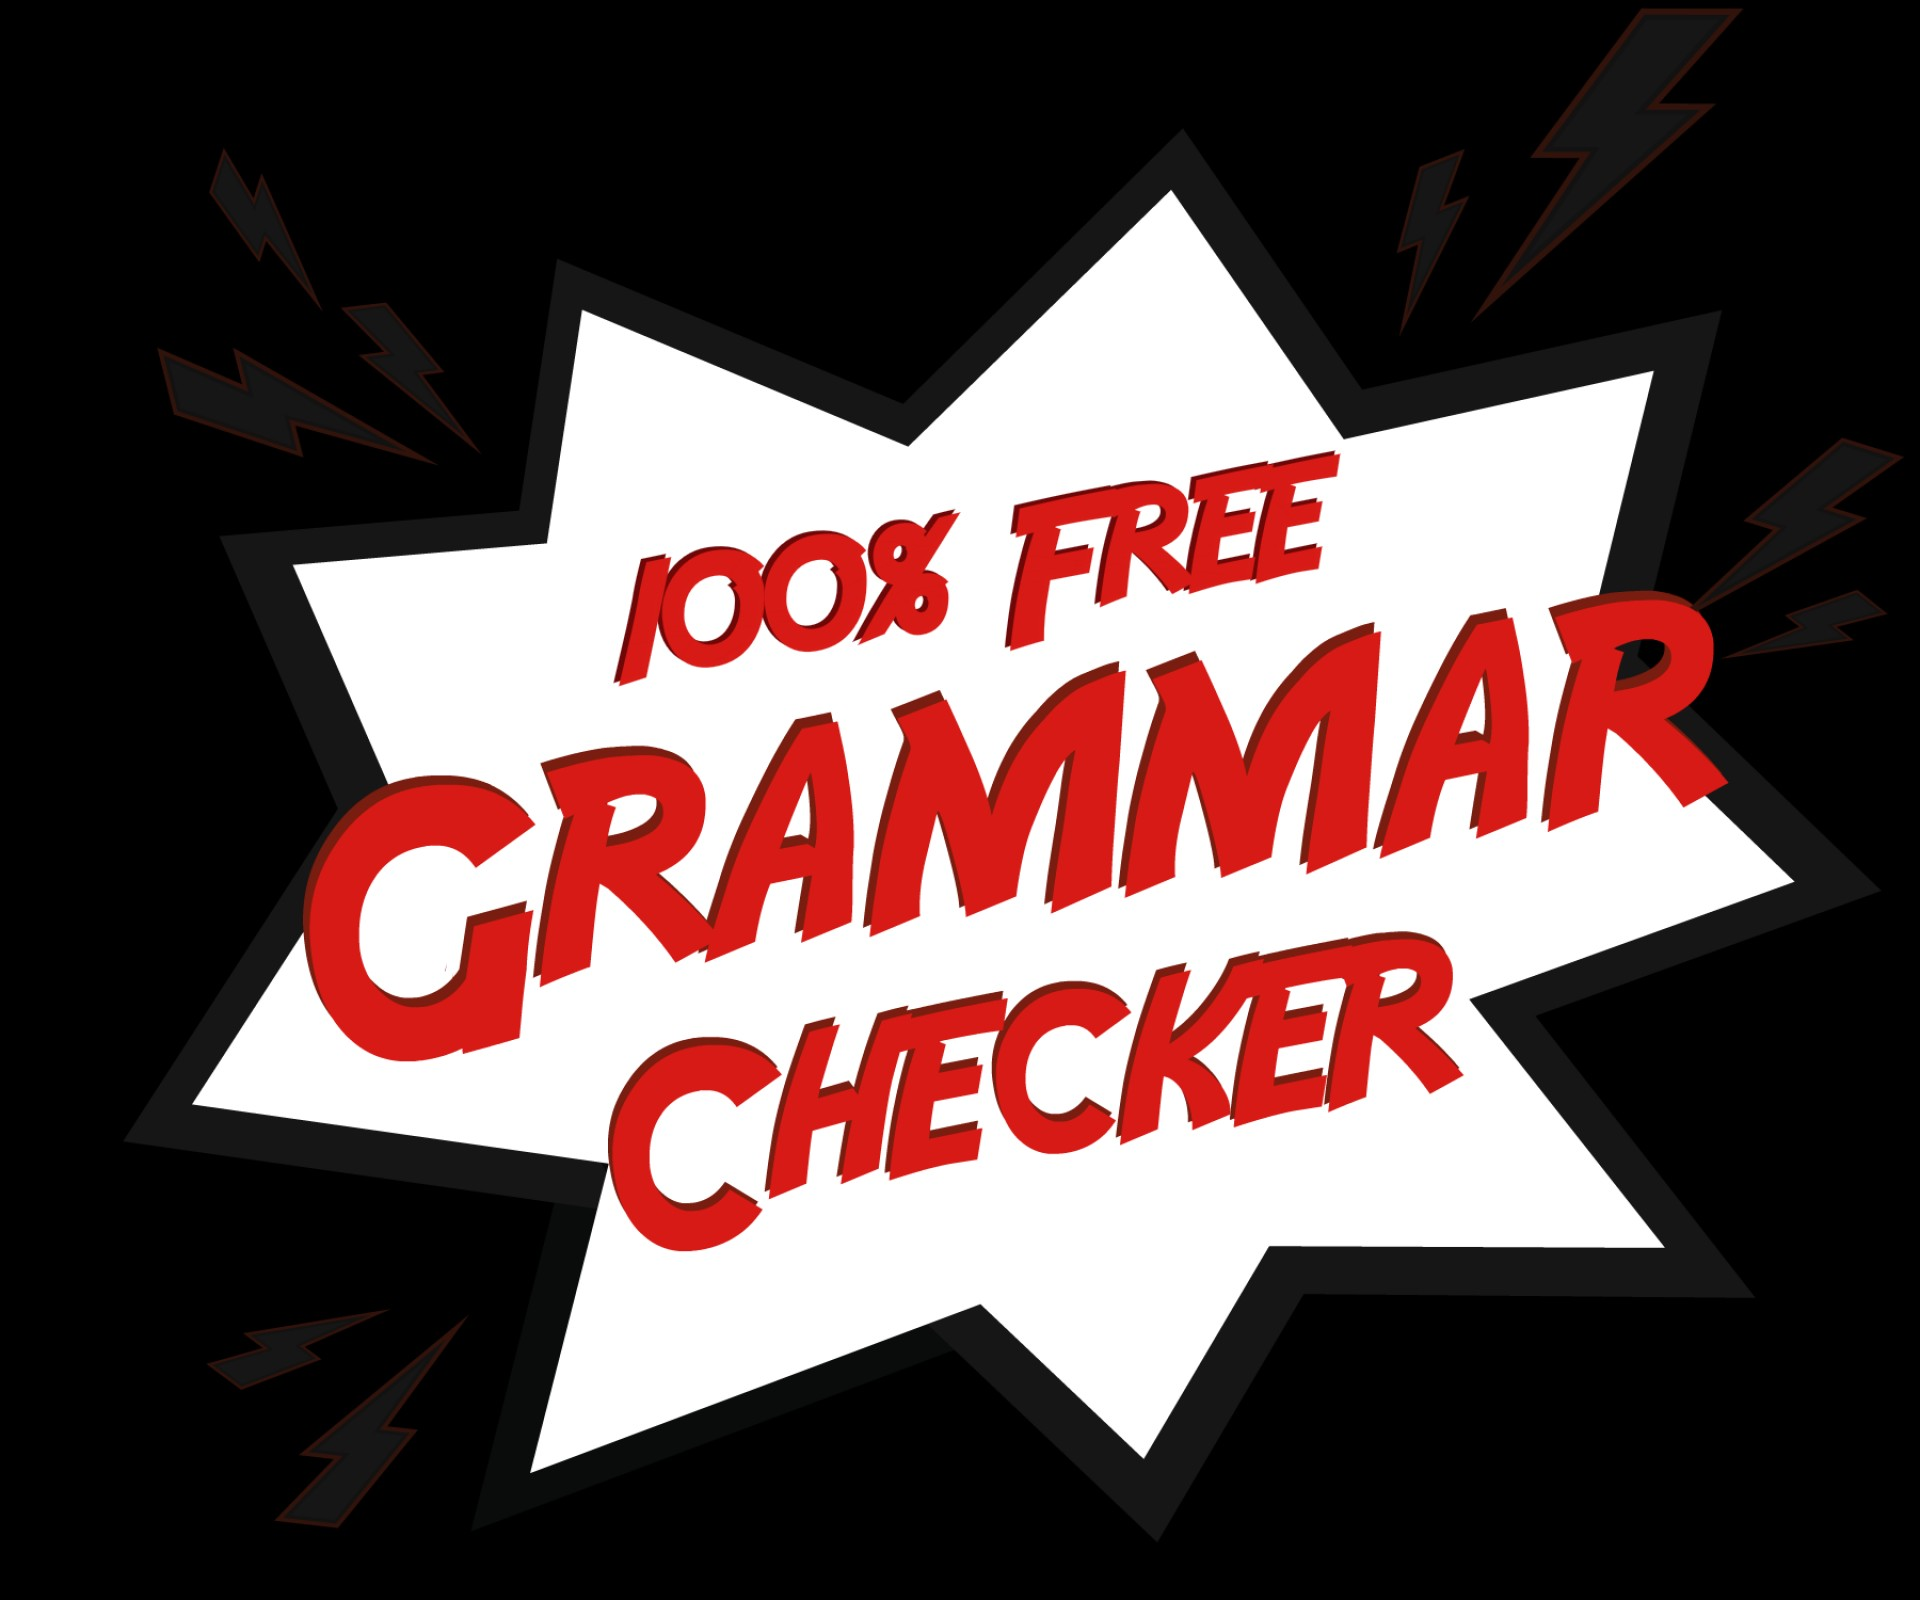 006 Check My Essay Free Freegrammarchecker Top For Punctuation Errors Plagiarism Mac Paper 1920